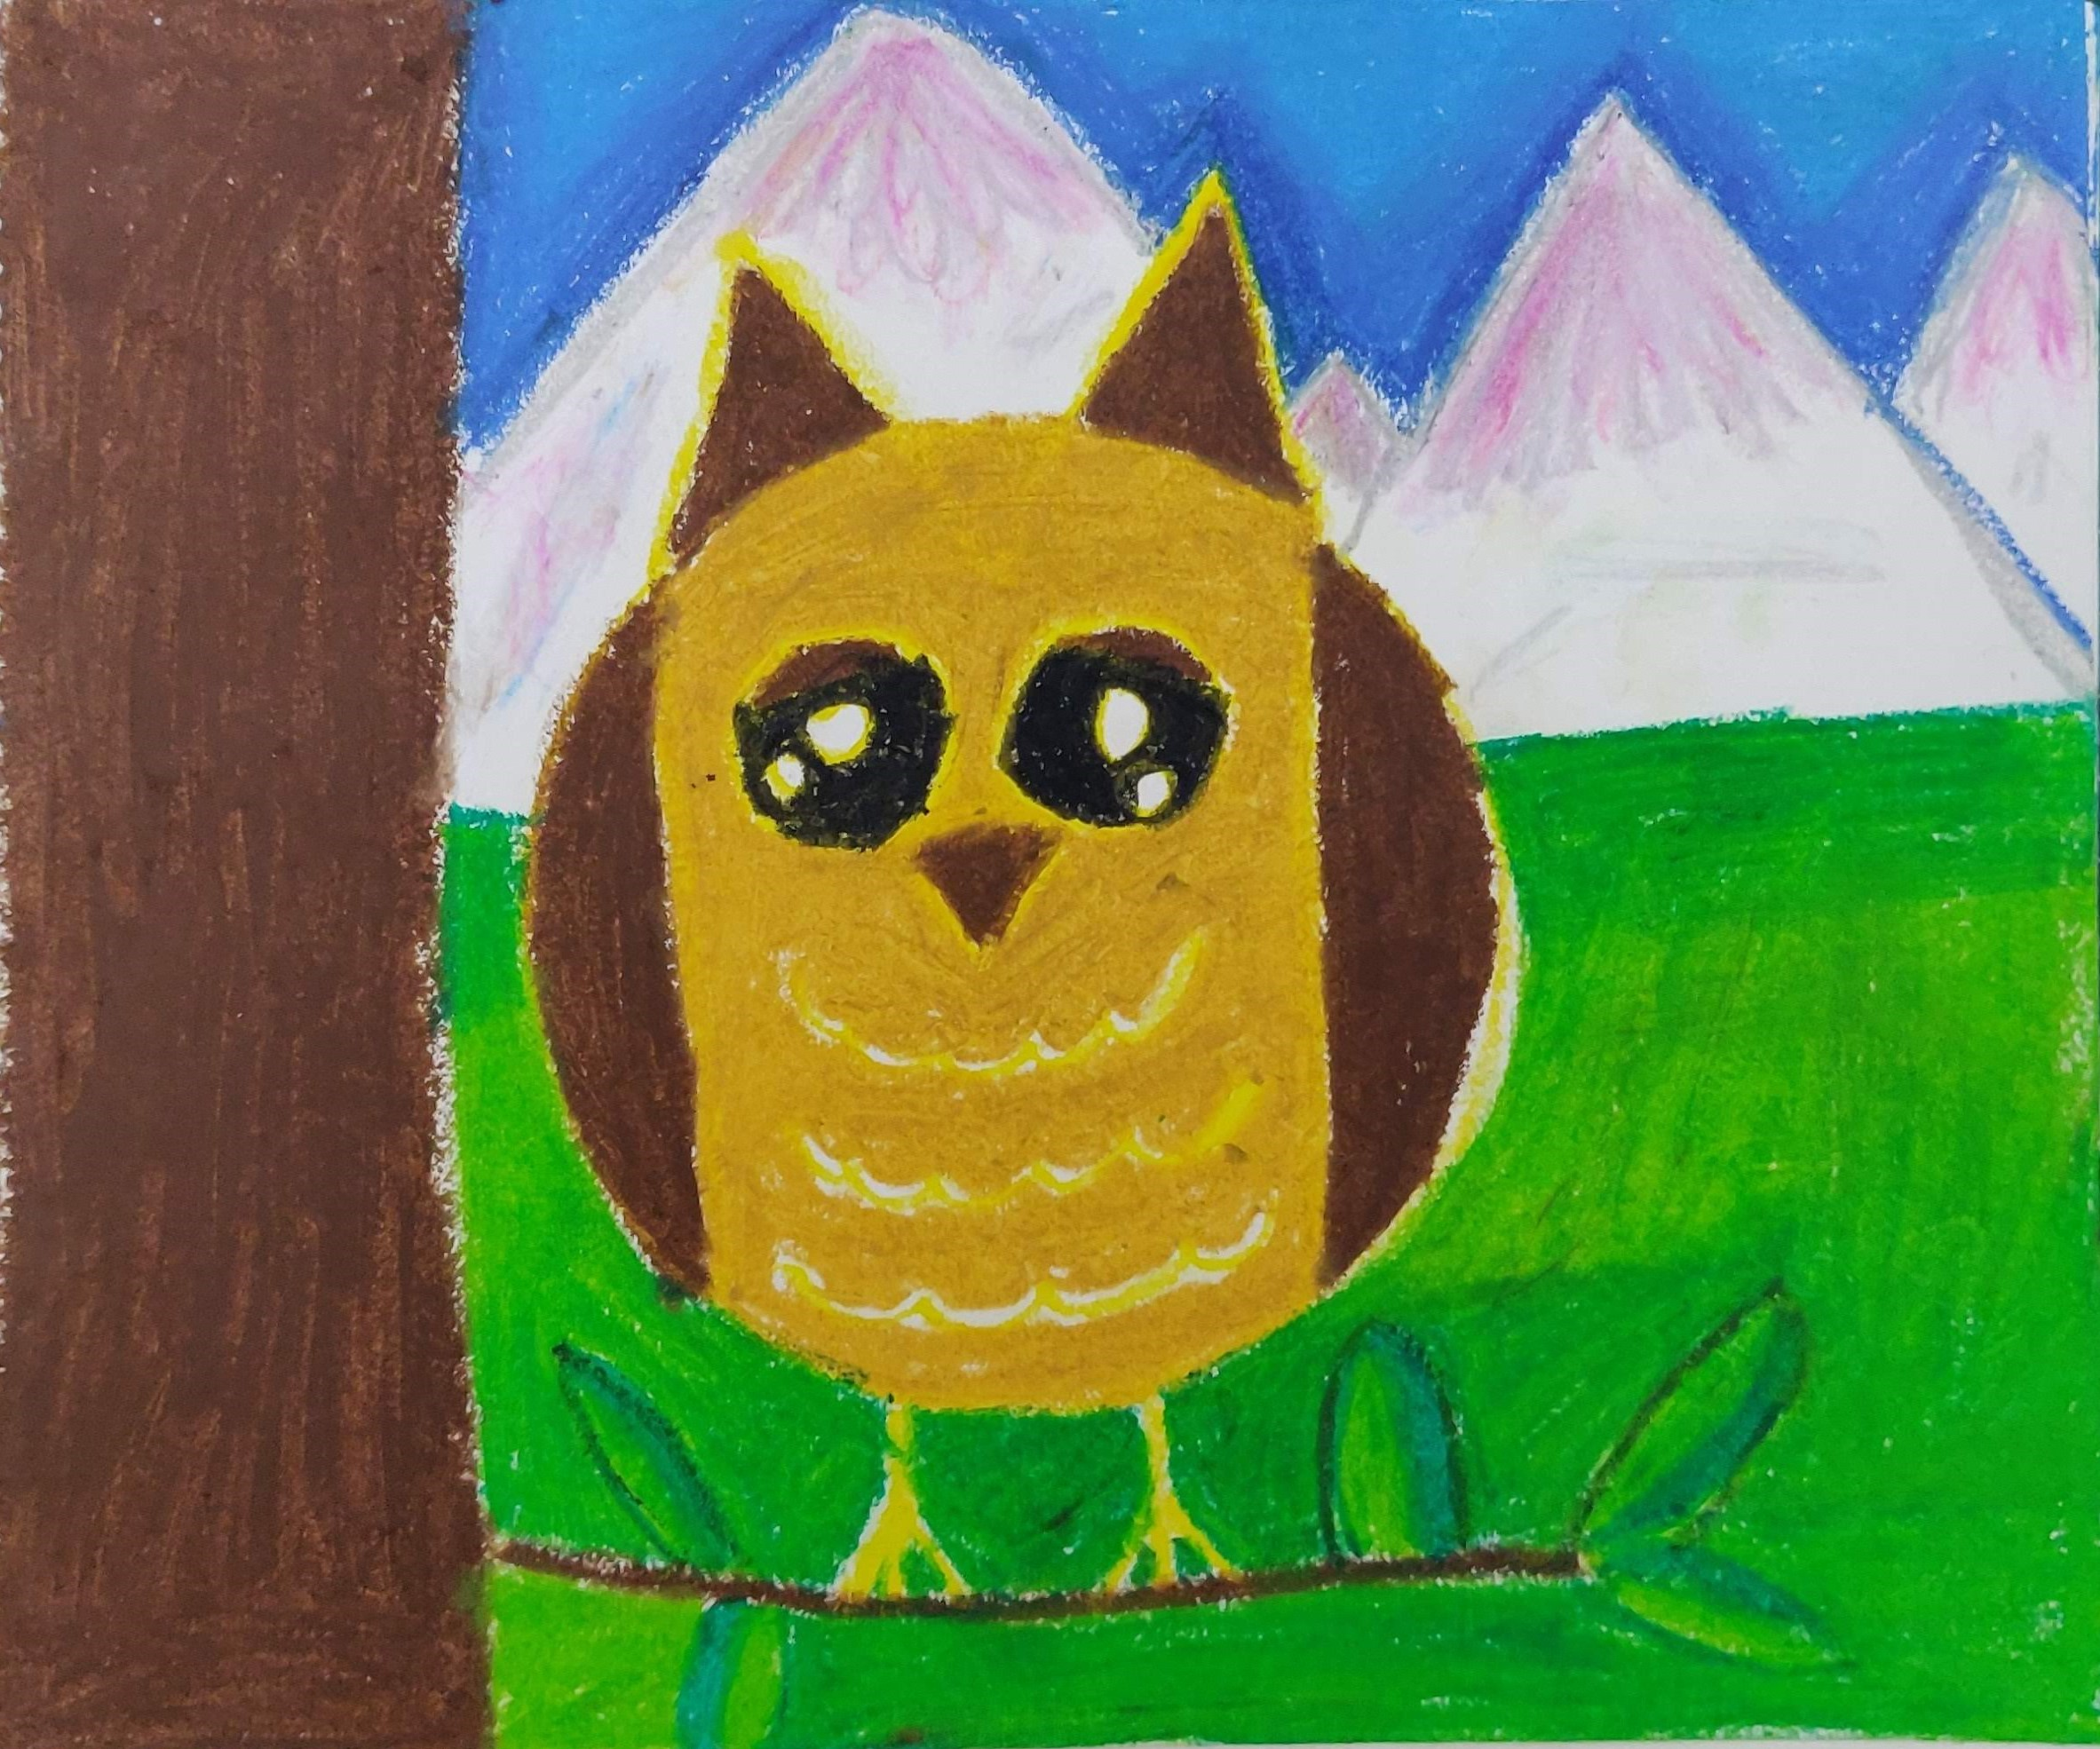 how to draw a simple owl with oil pastels